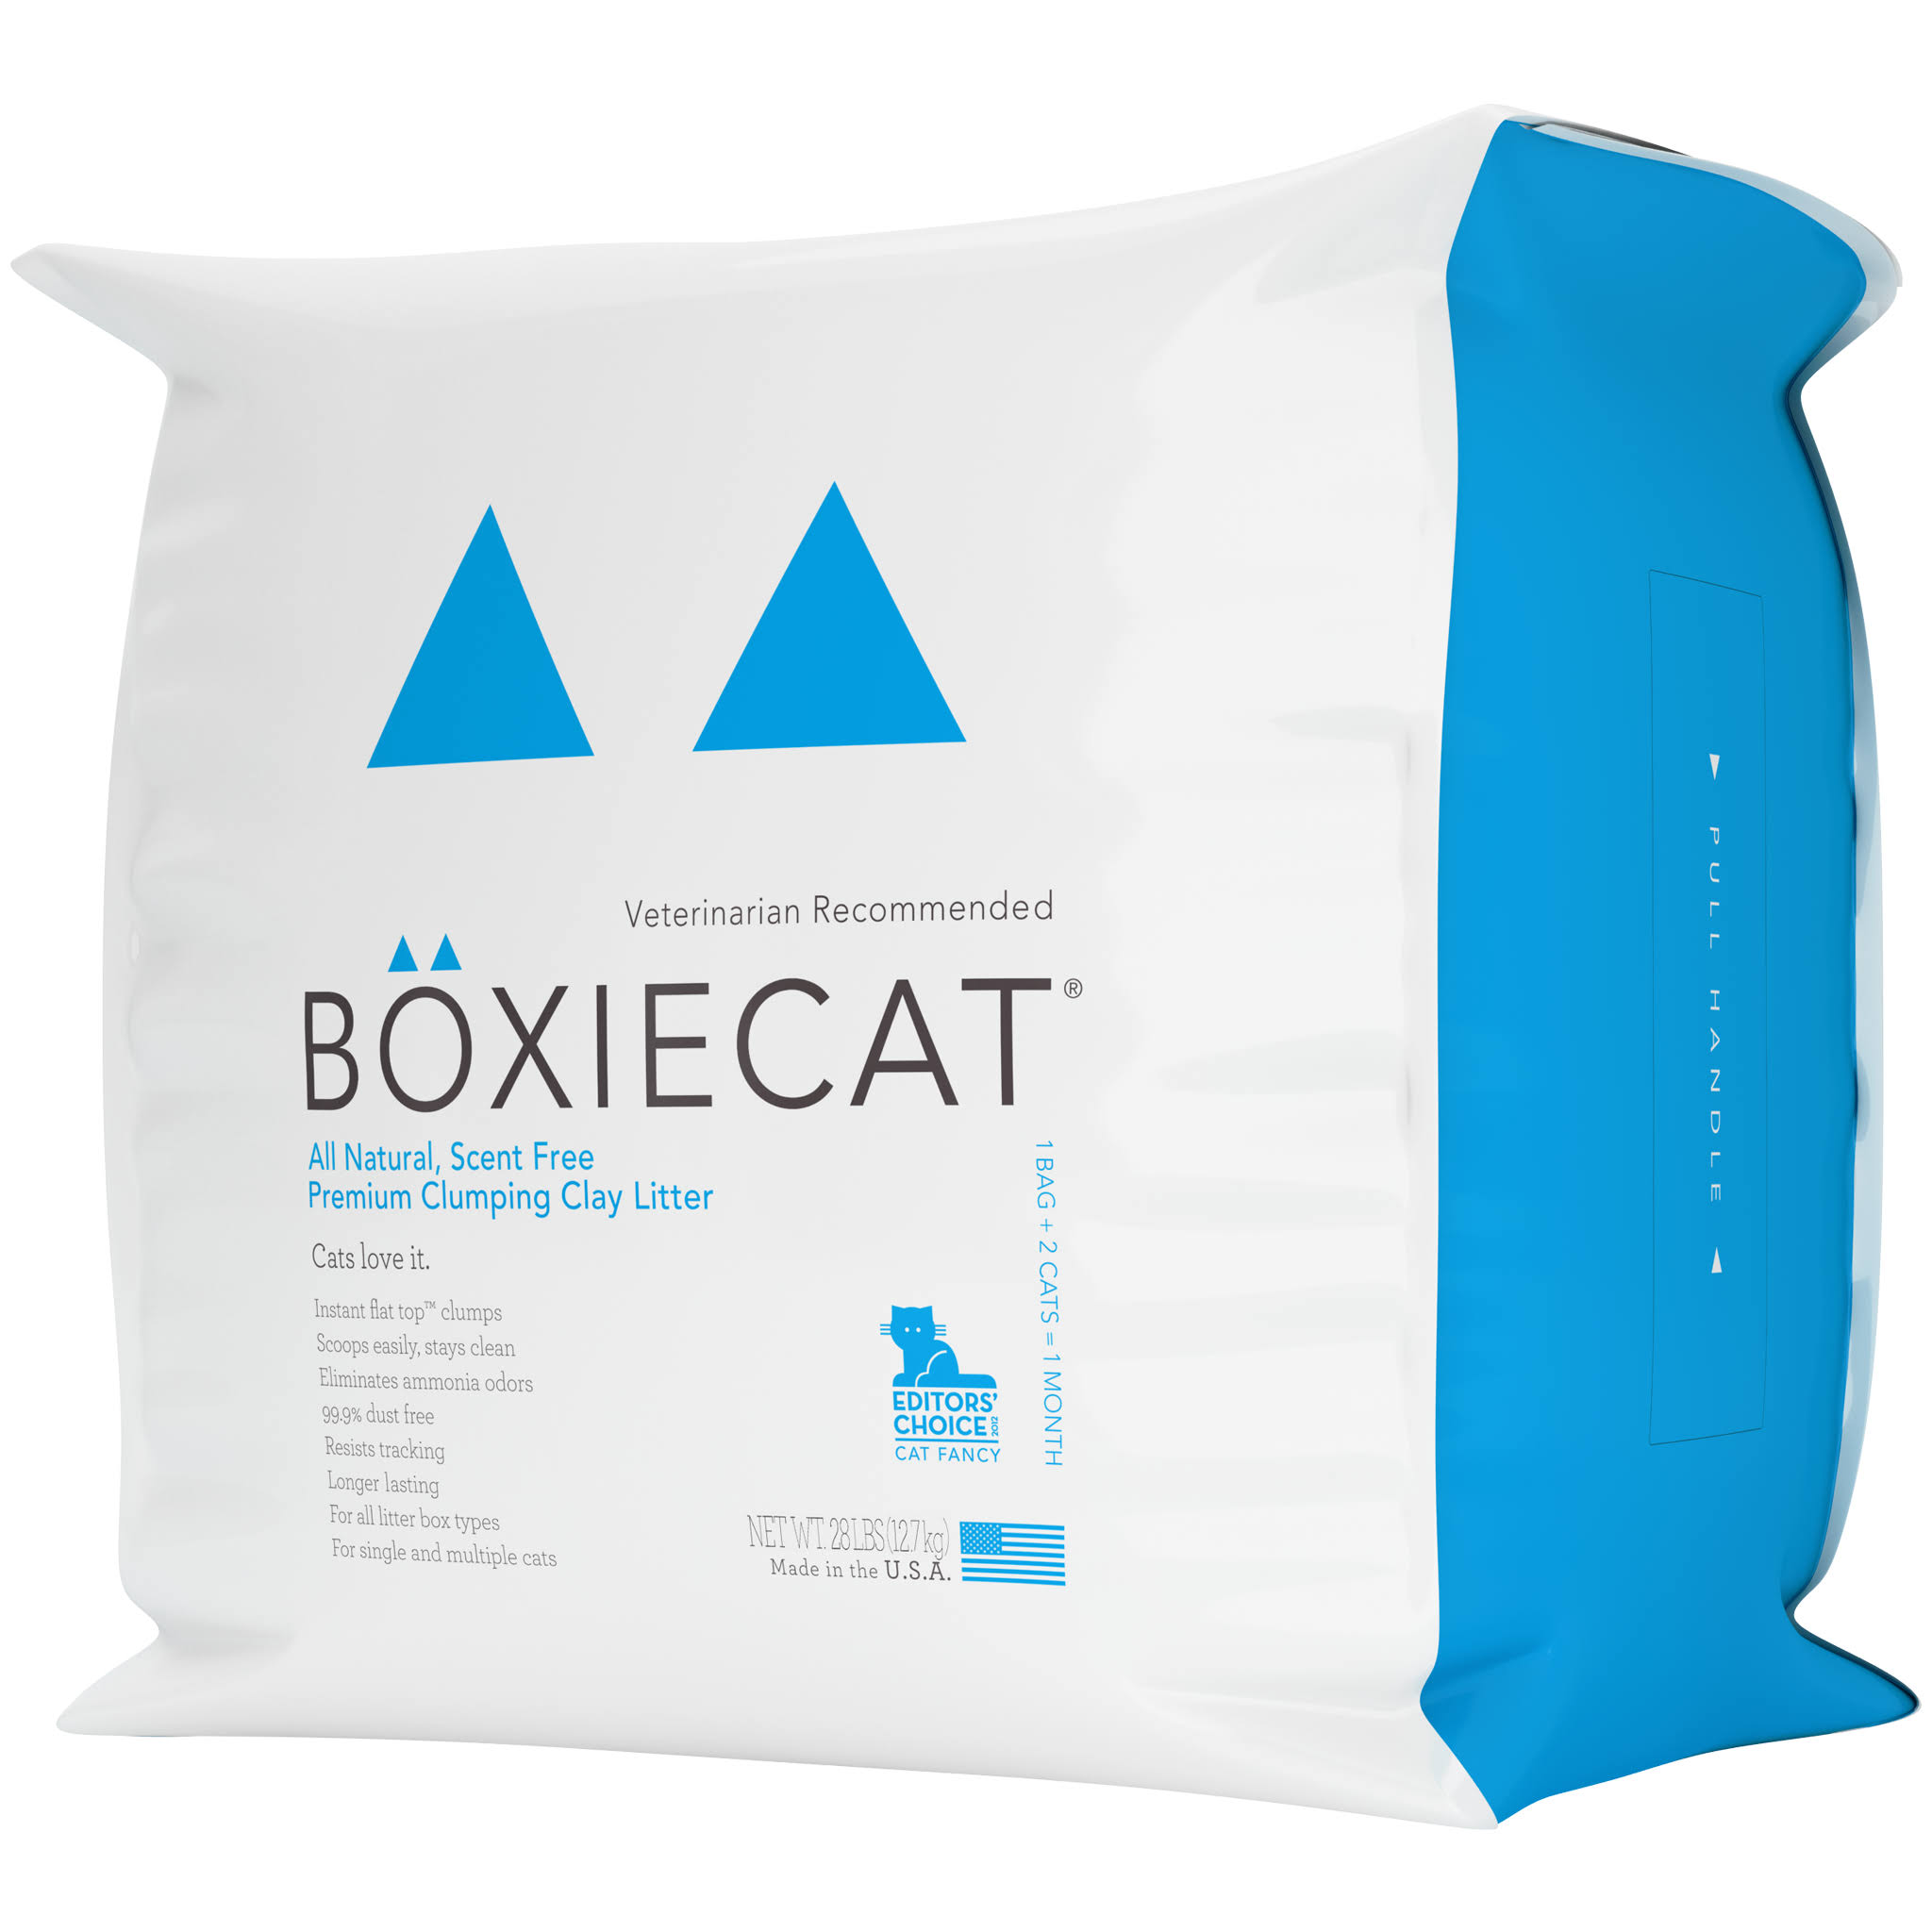 Boxiecat Premium Clumping Clay Cat Litter